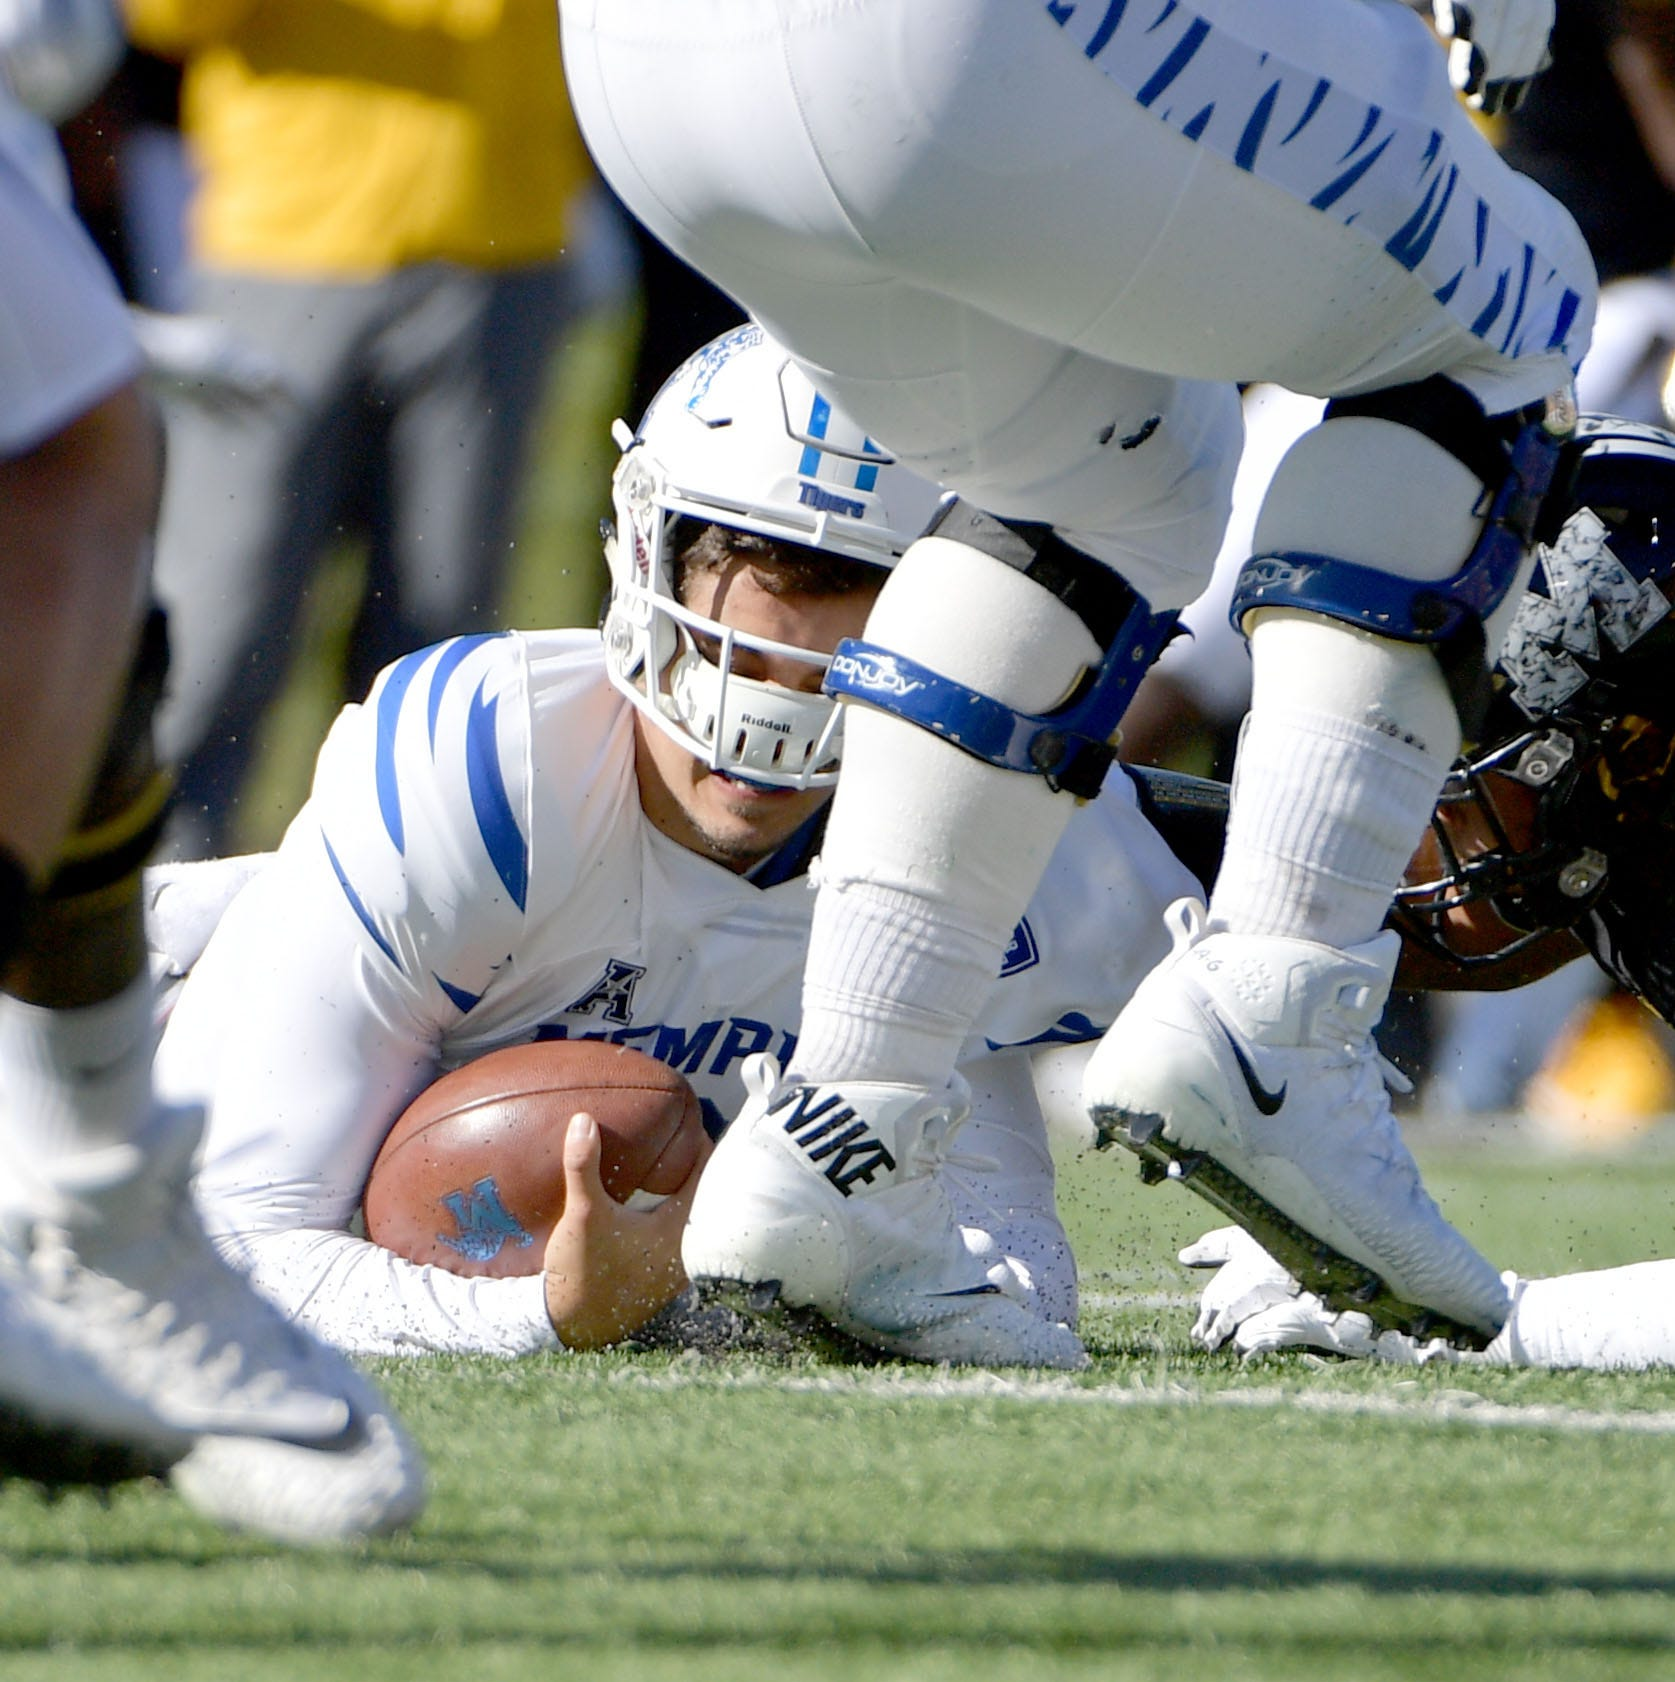 After another loss, it's time for Memphis football to face the facts